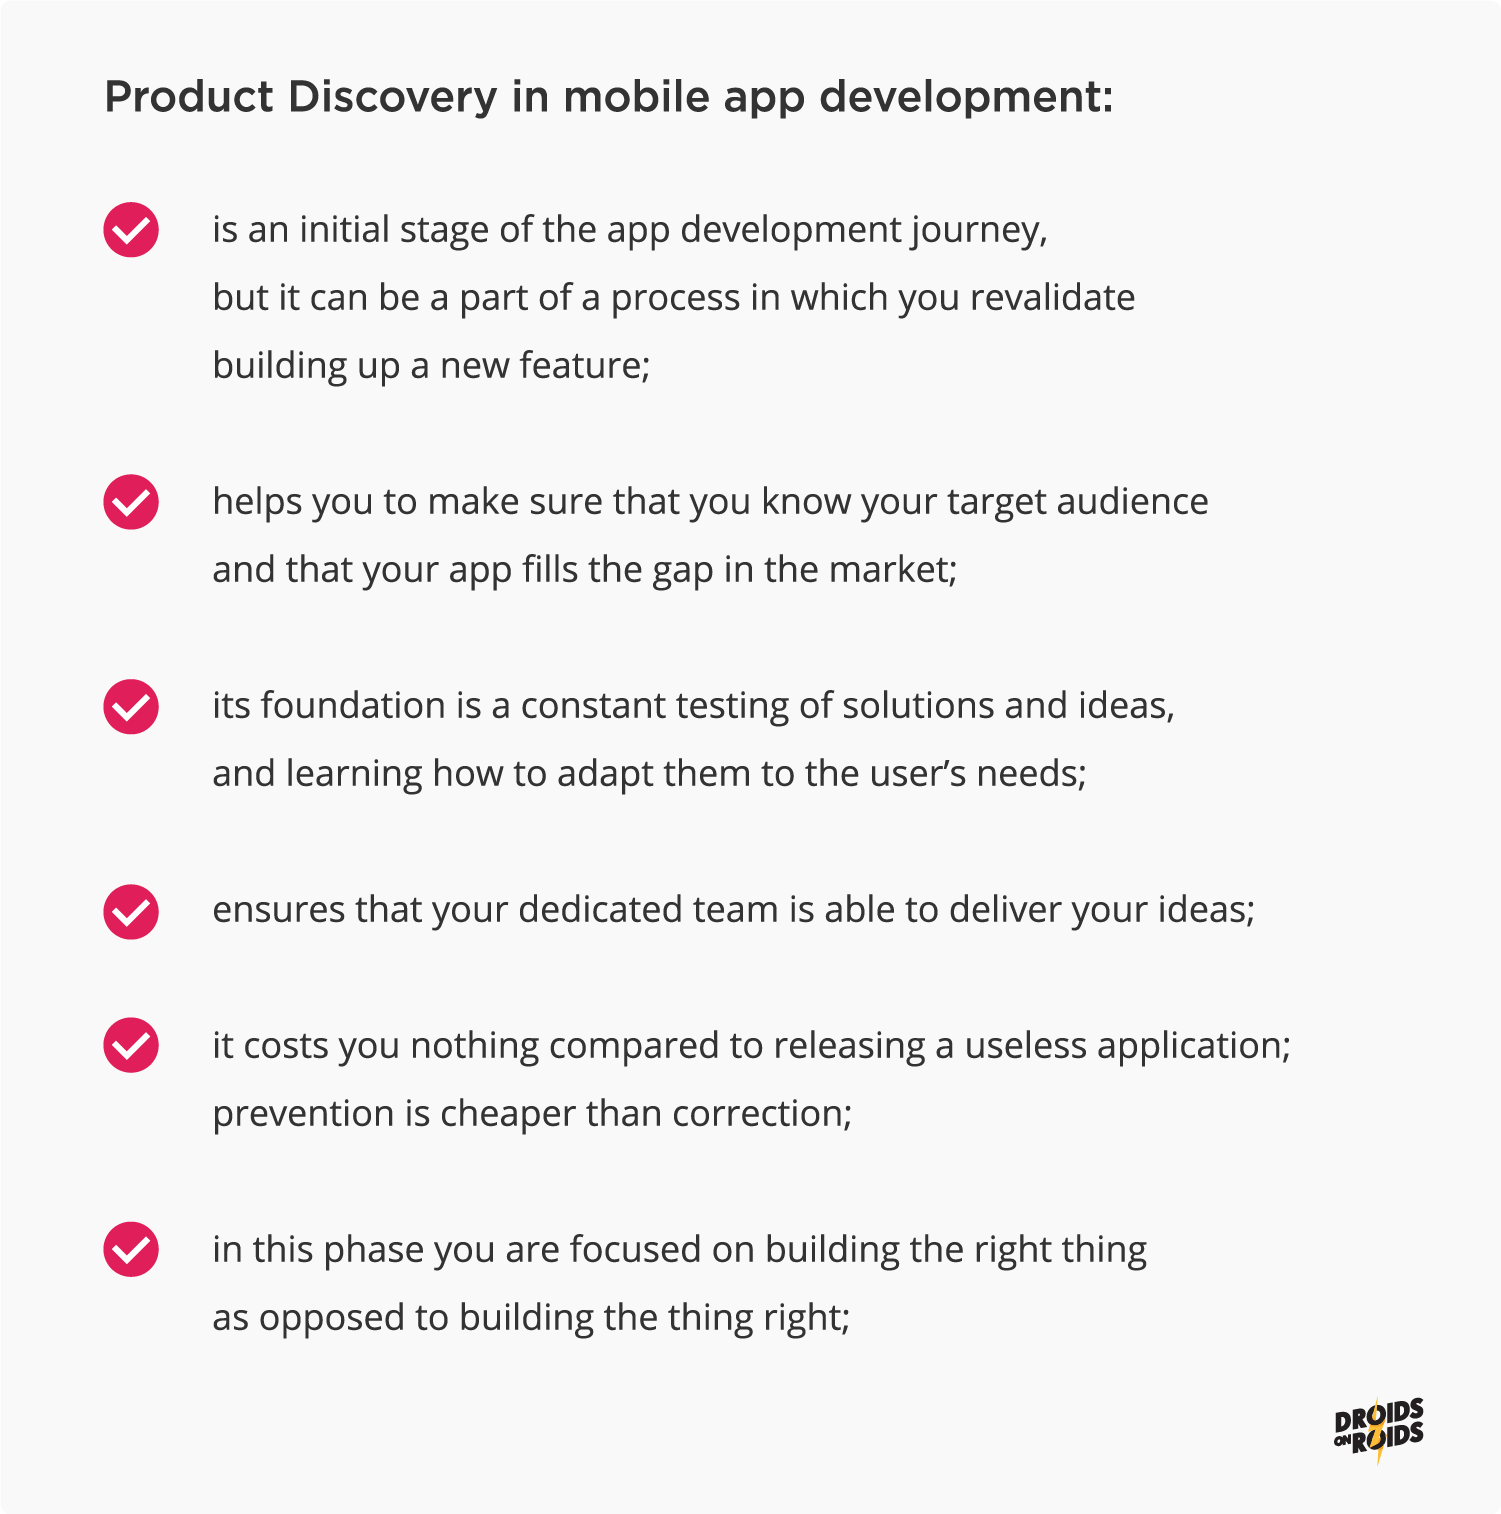 Product Discovery - introduction and definition